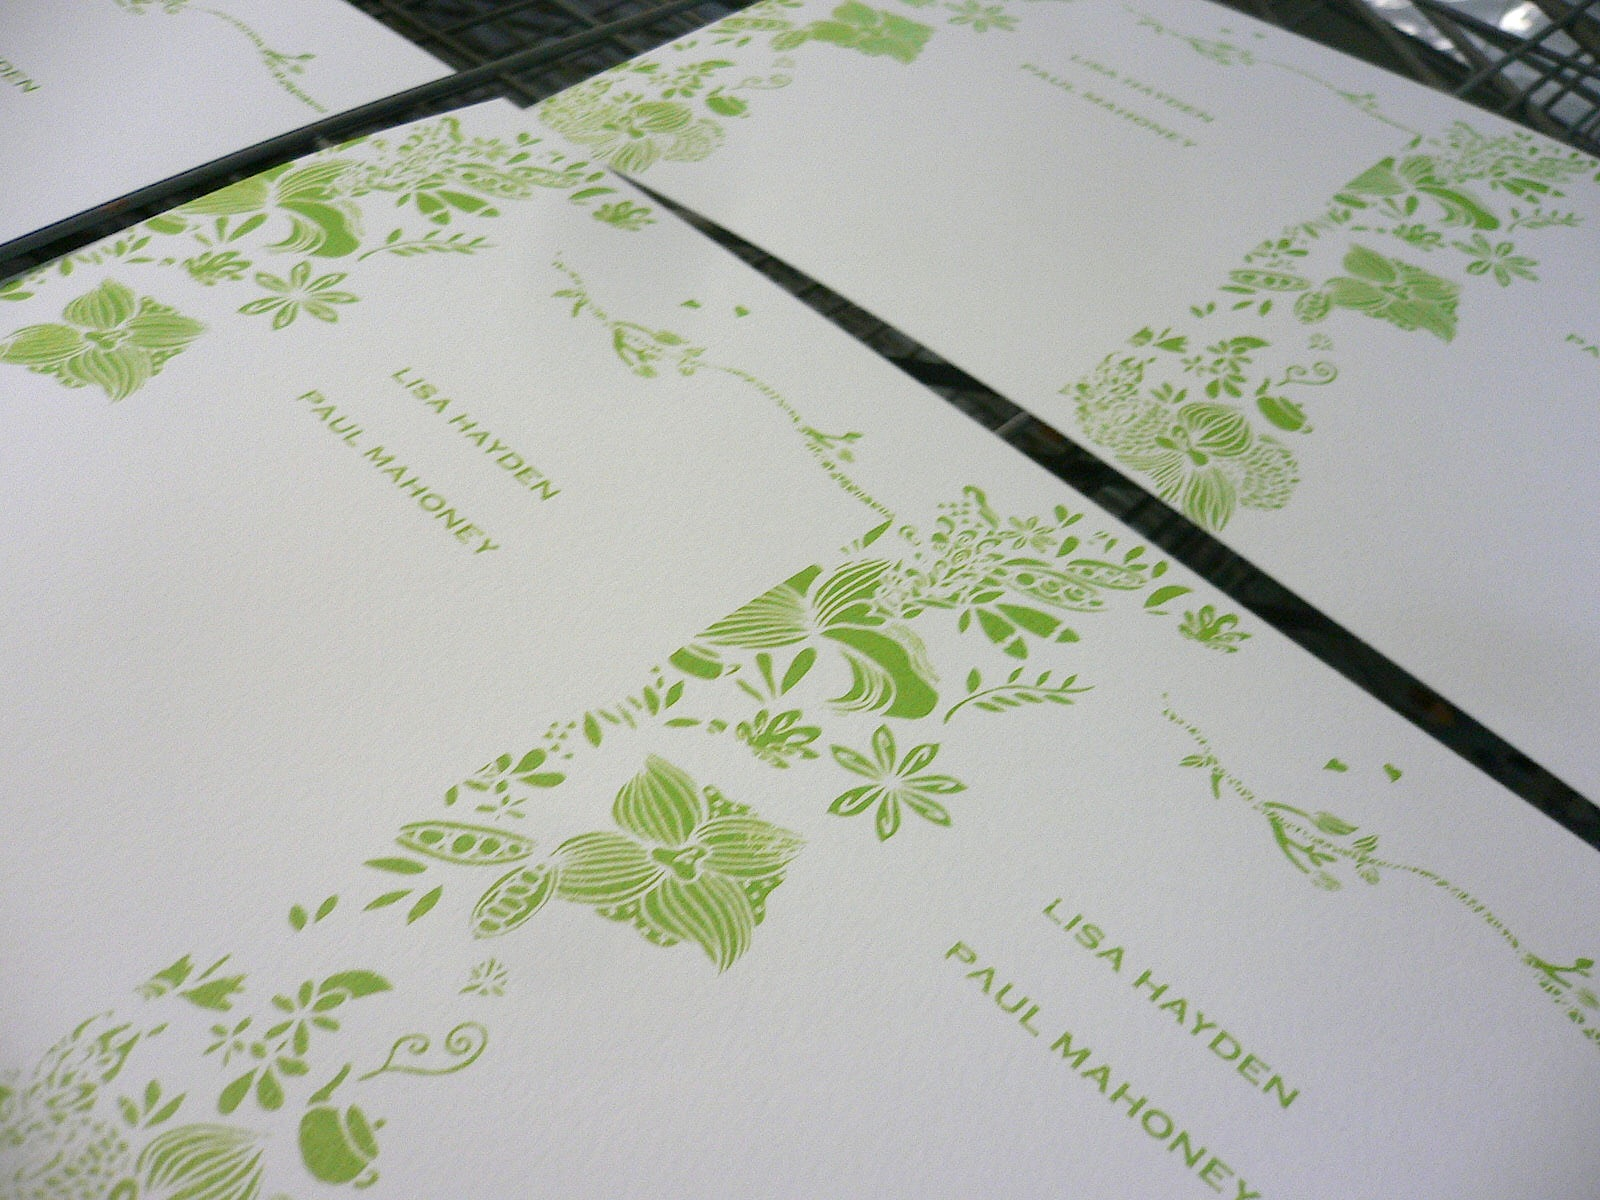 Kalo Make Art Blog: Bespoke Handprinted Wedding Invitations for Lisa ...